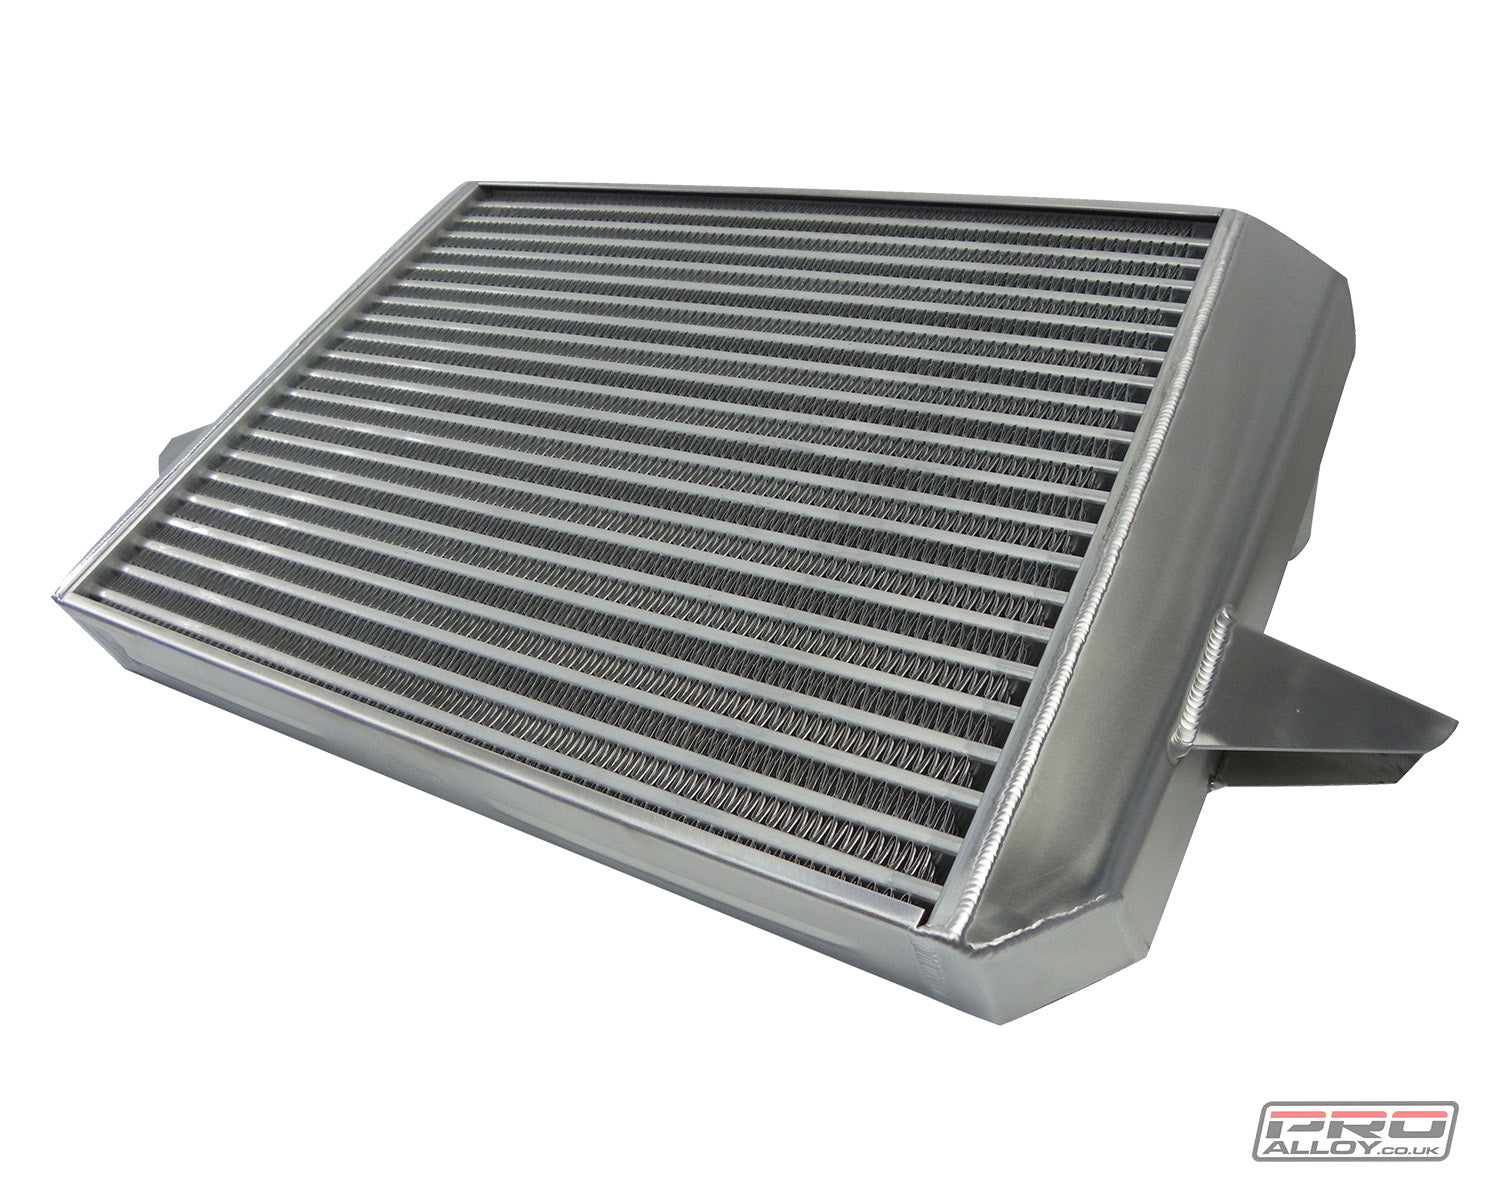 Scorta Cosworth Intercooler - 50mm